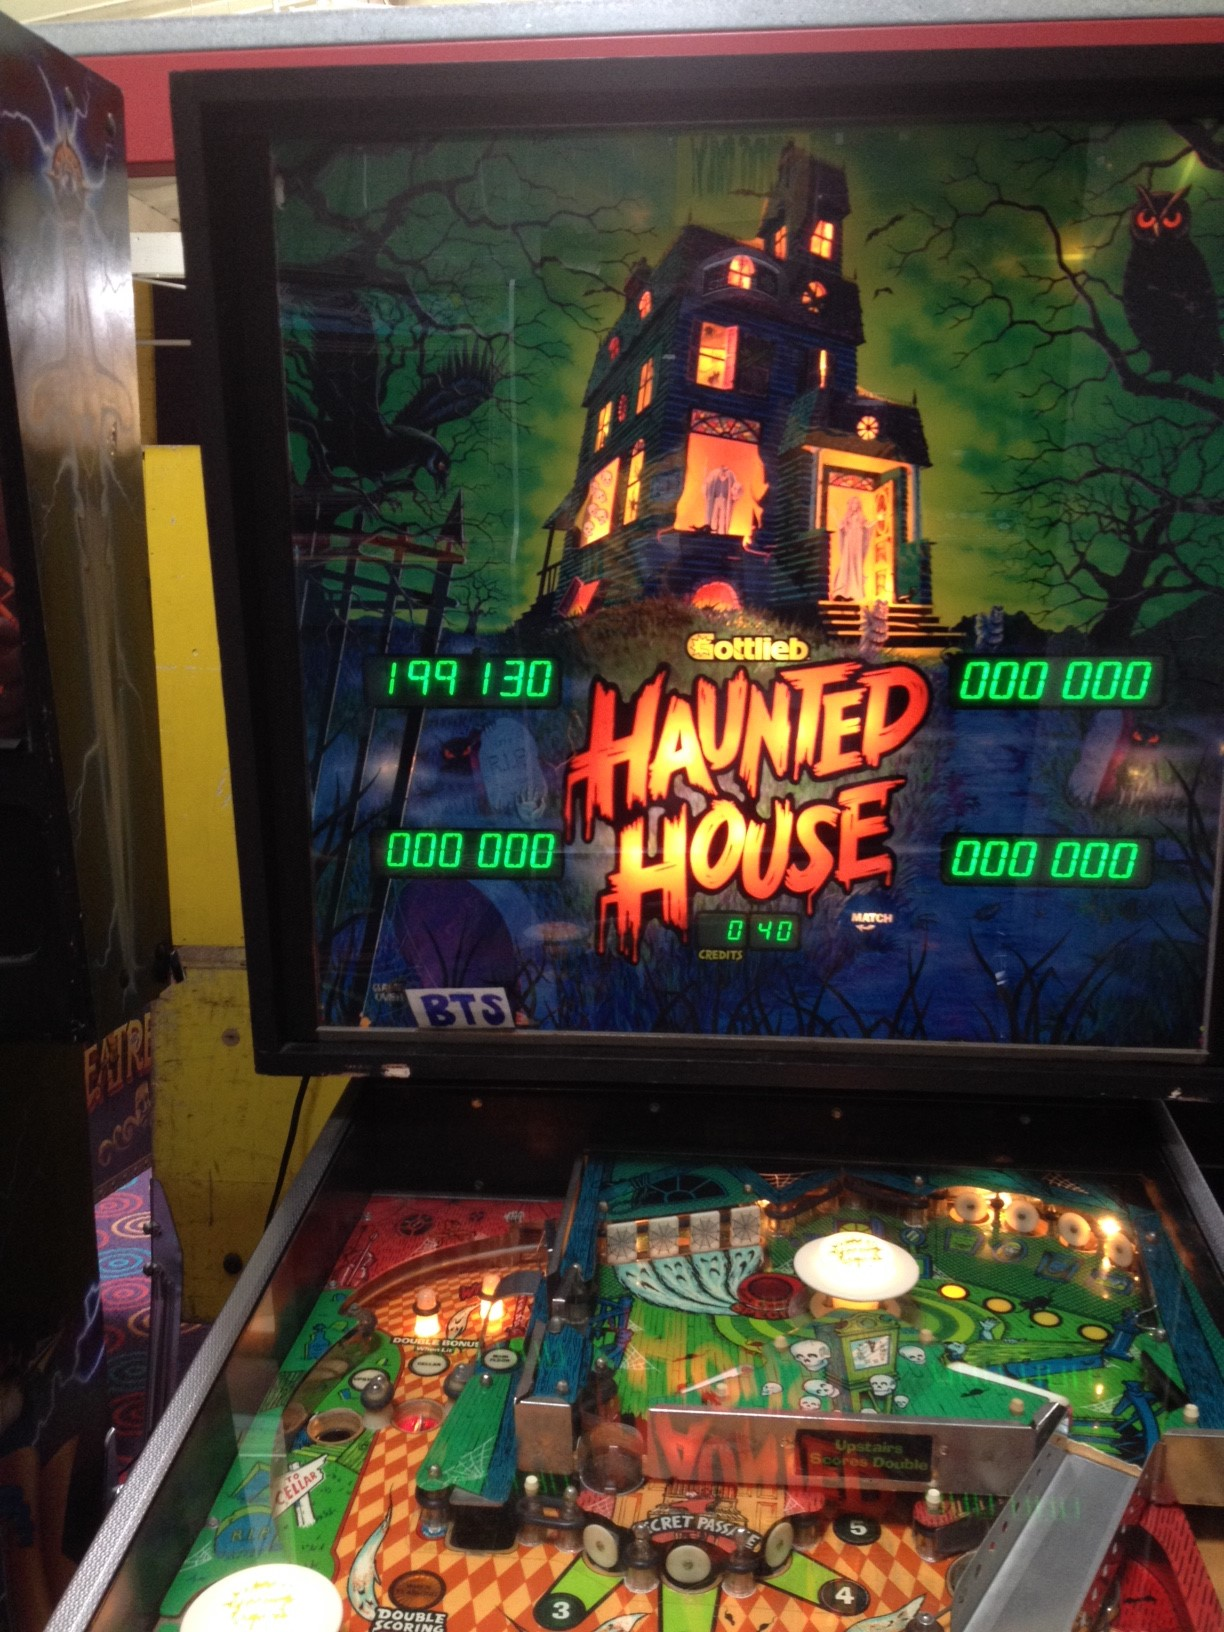 bensweeneyonbass: Haunted House (Pinball: 3 Balls) 199,130 points on 2016-03-21 08:59:39